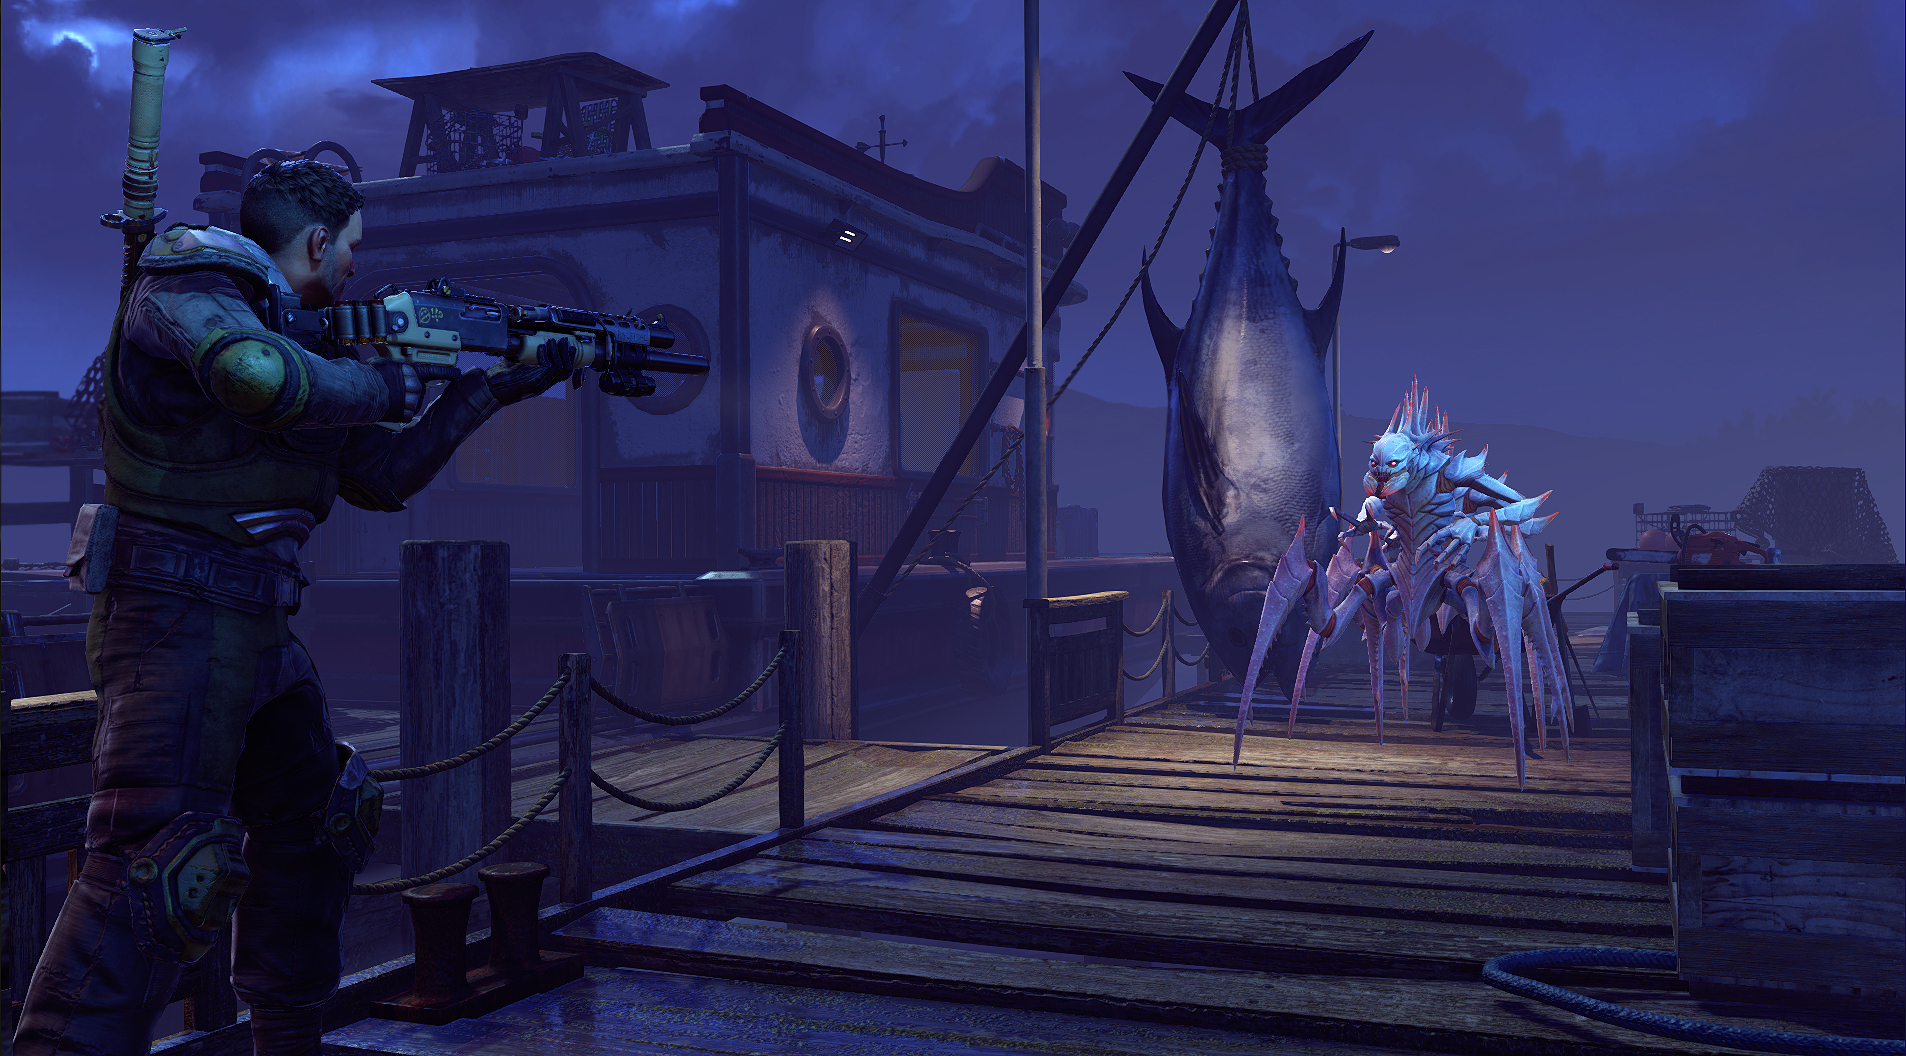 XCOM 2: War of the Chosen - Tactical Legacy Pack Available Now